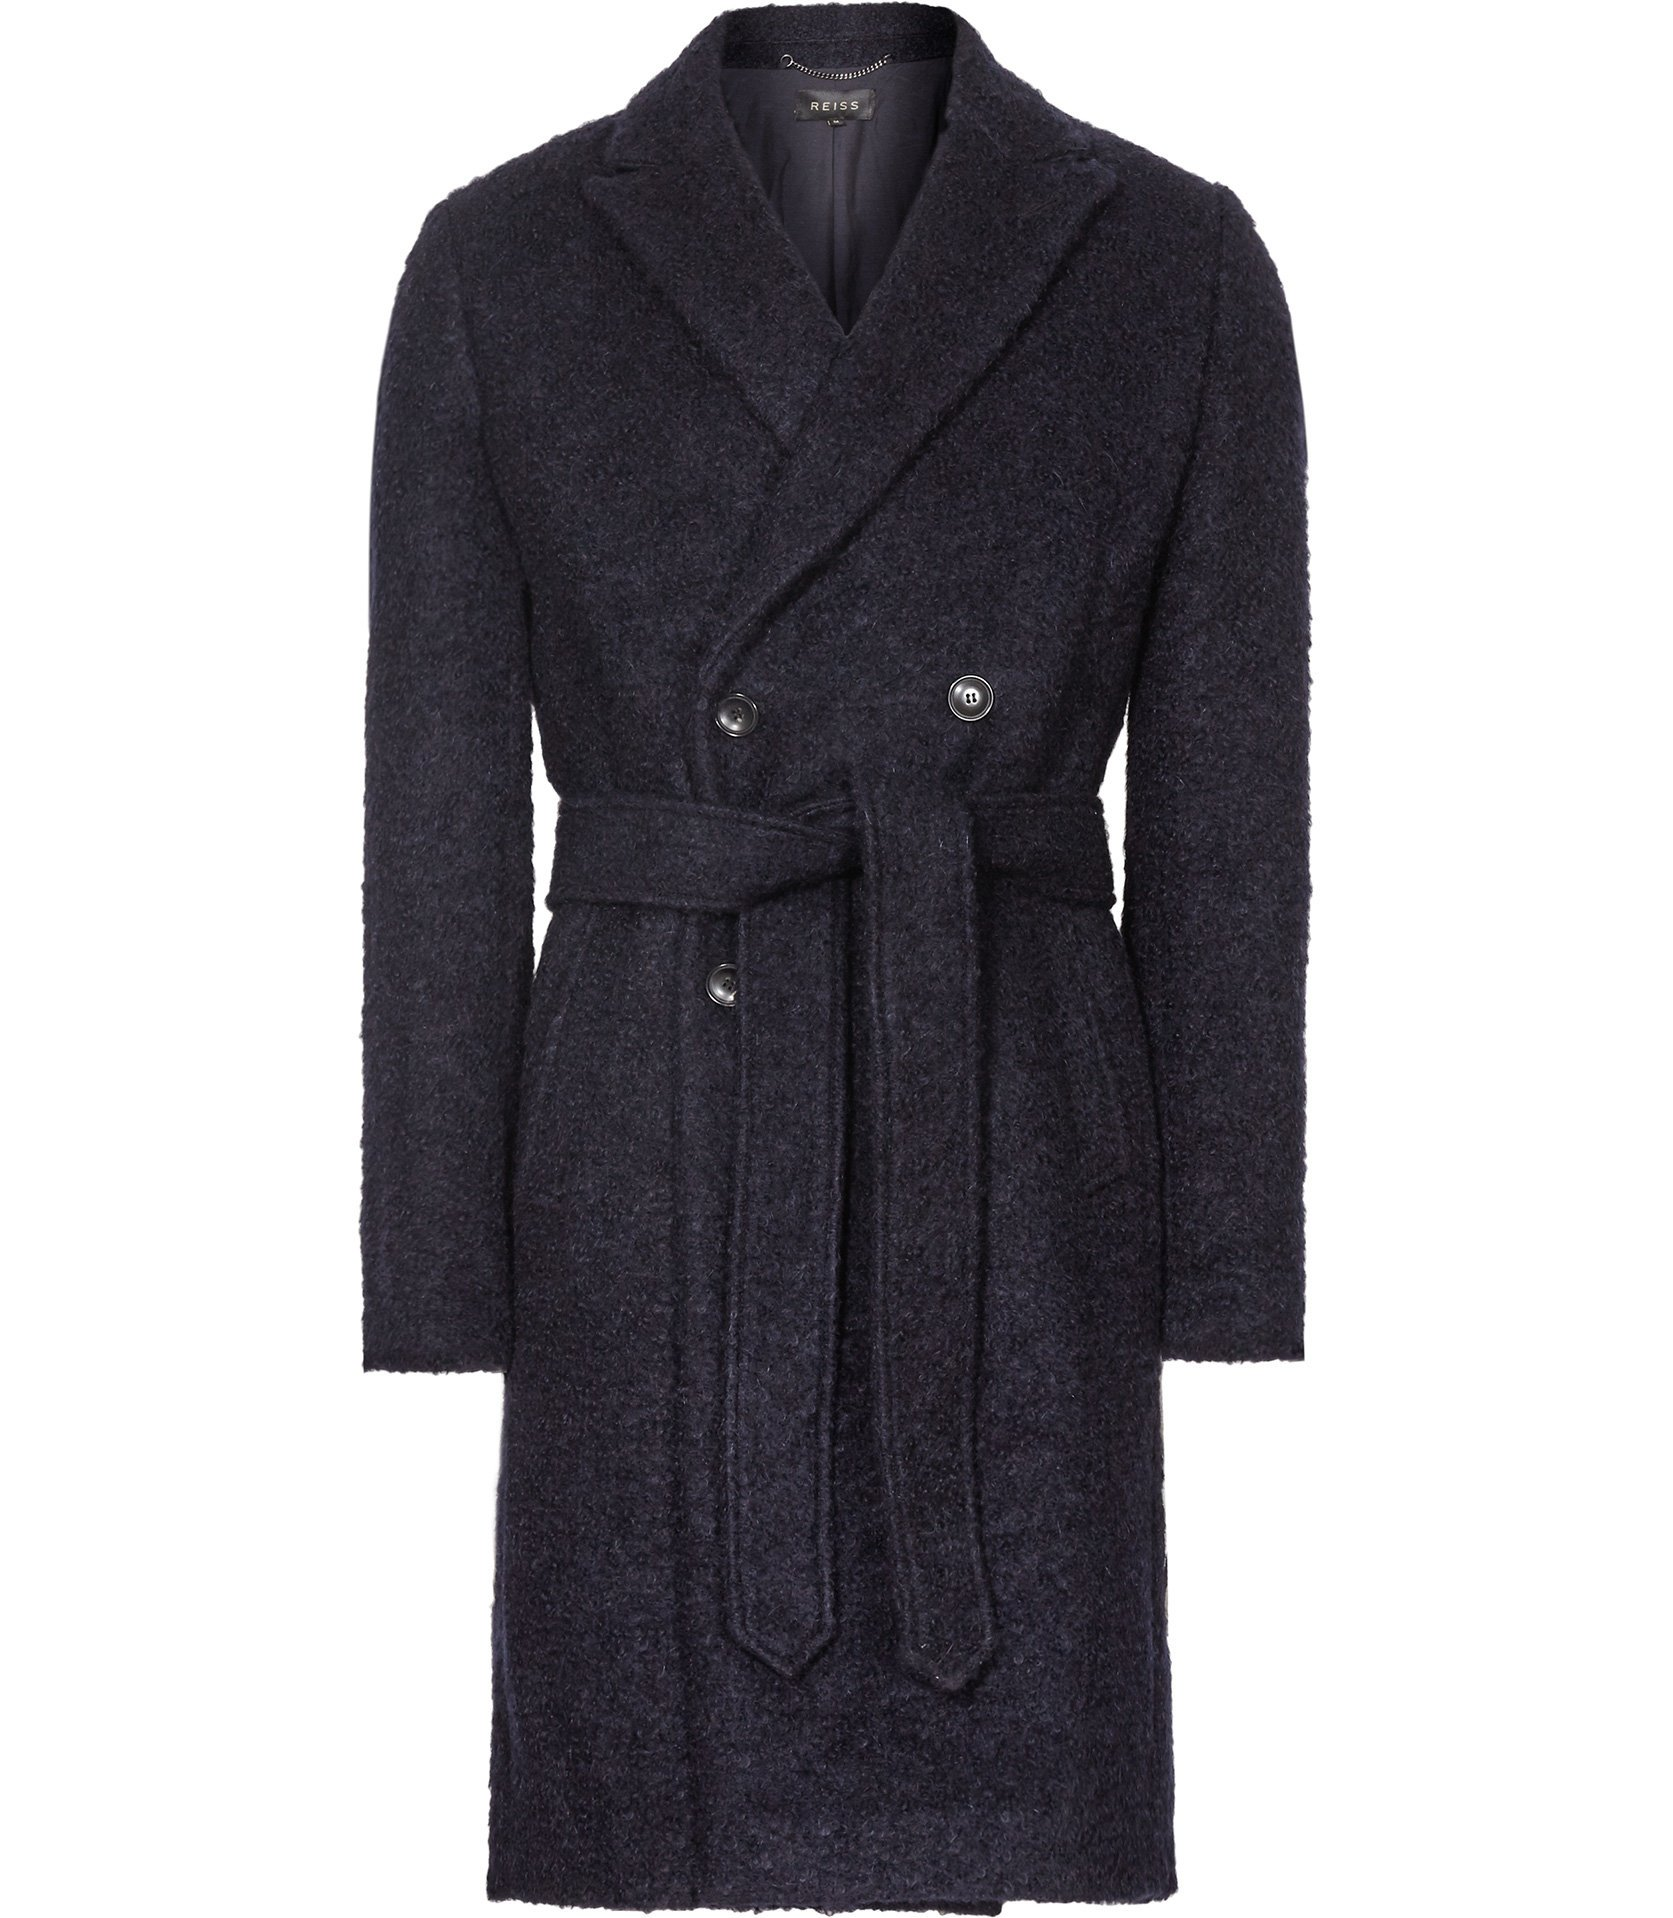 Reiss Navy Miles Double-Breasted Coat